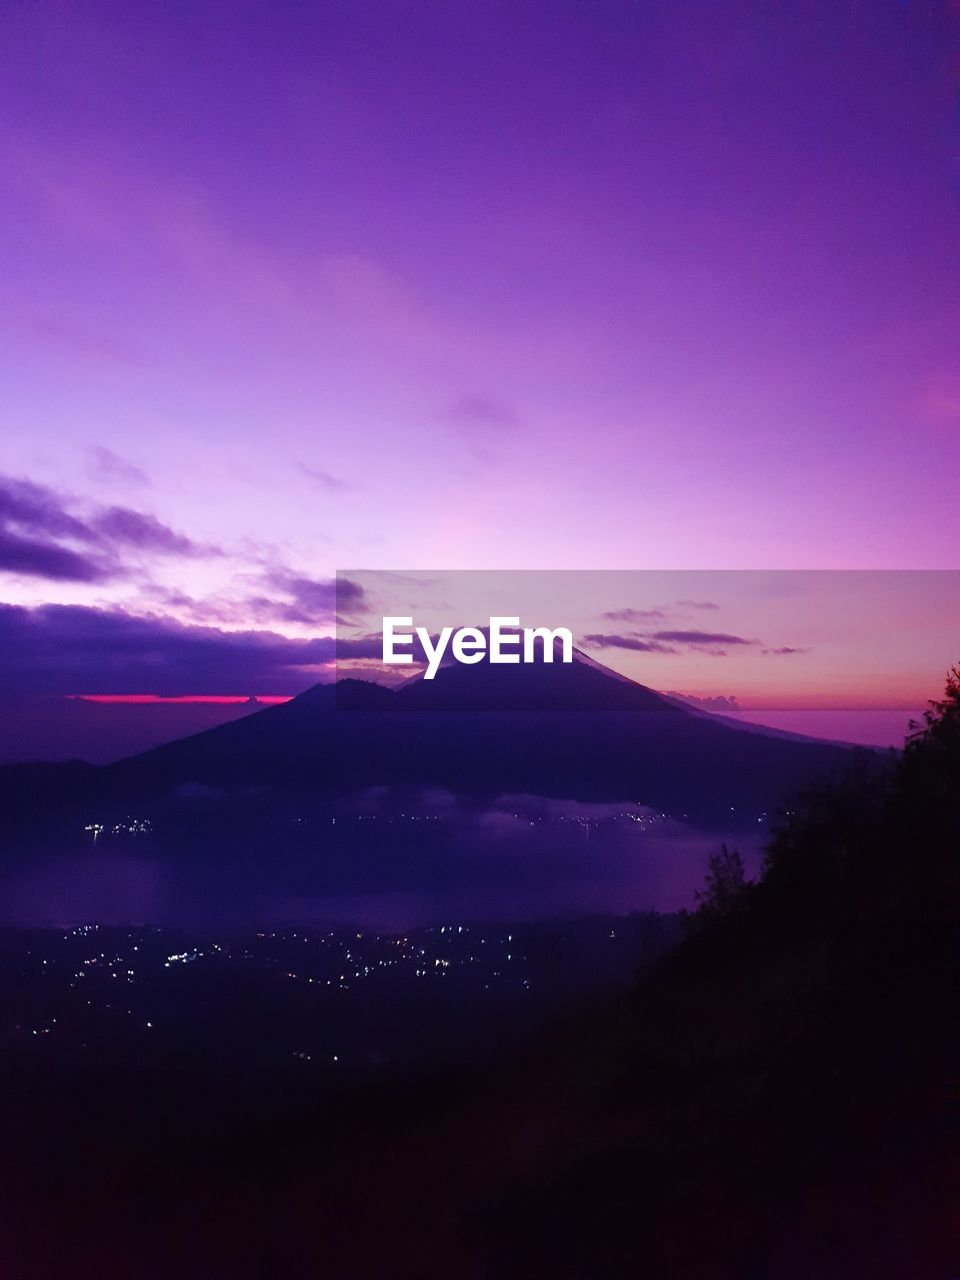 sky, sunset, beauty in nature, scenics - nature, tranquil scene, tranquility, idyllic, cloud - sky, silhouette, mountain, nature, no people, environment, purple, landscape, non-urban scene, outdoors, dramatic sky, orange color, pink color, romantic sky